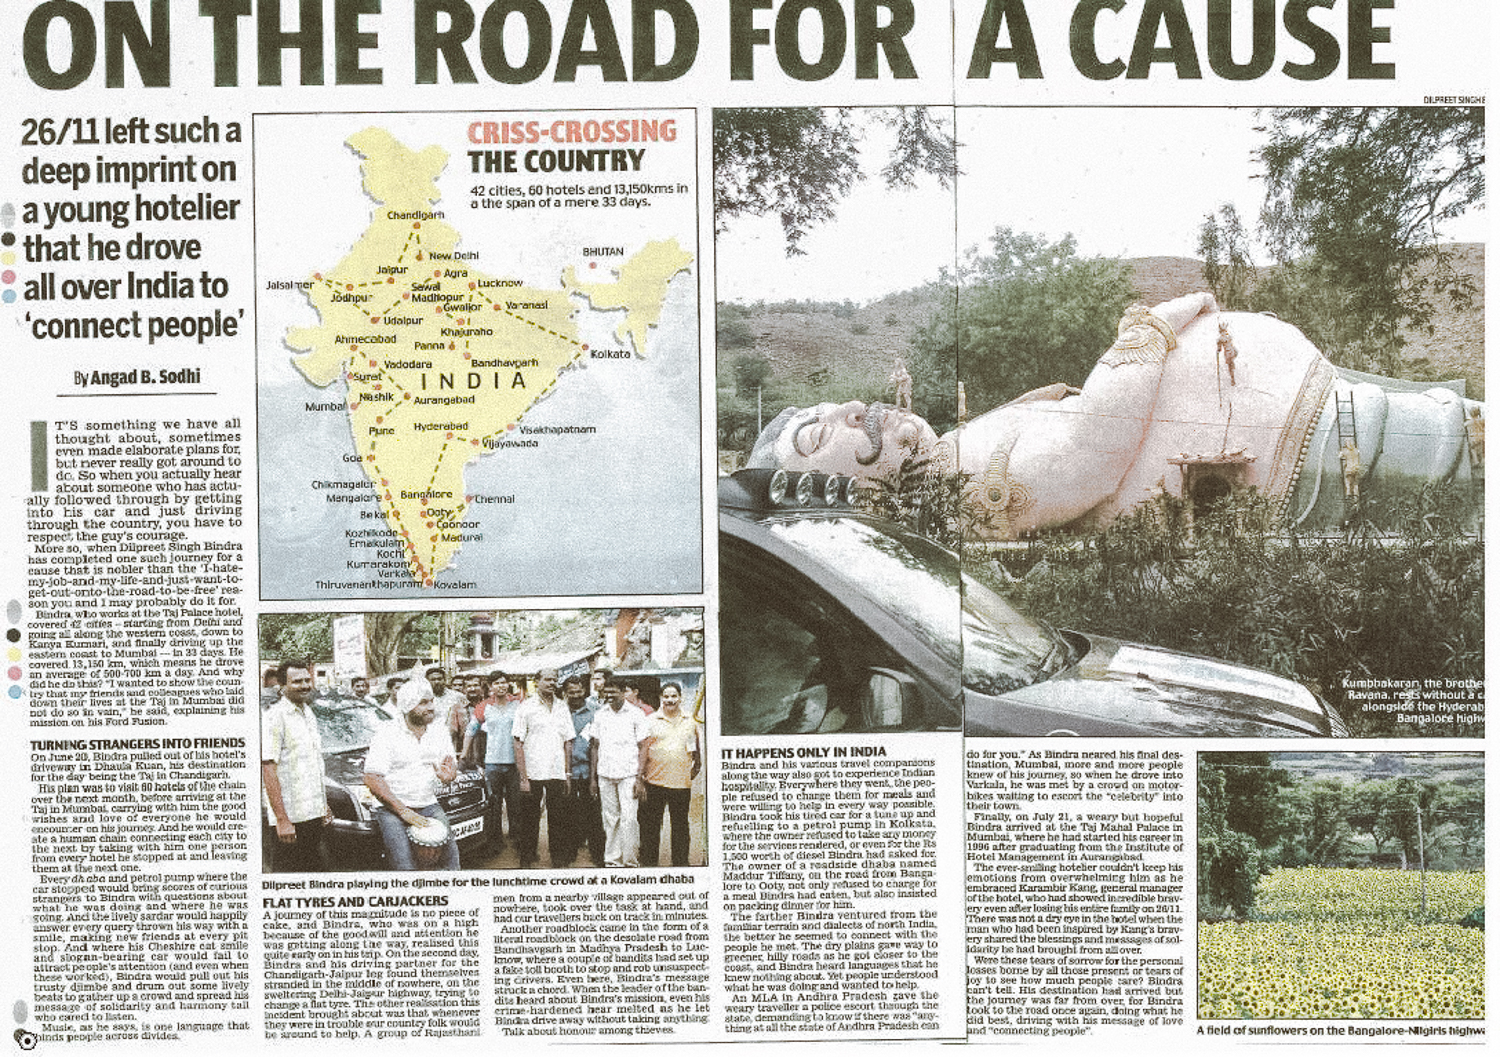 Dilpreet Singh Bindra, press coverage on cross-country drive to every Taj hotel in India.